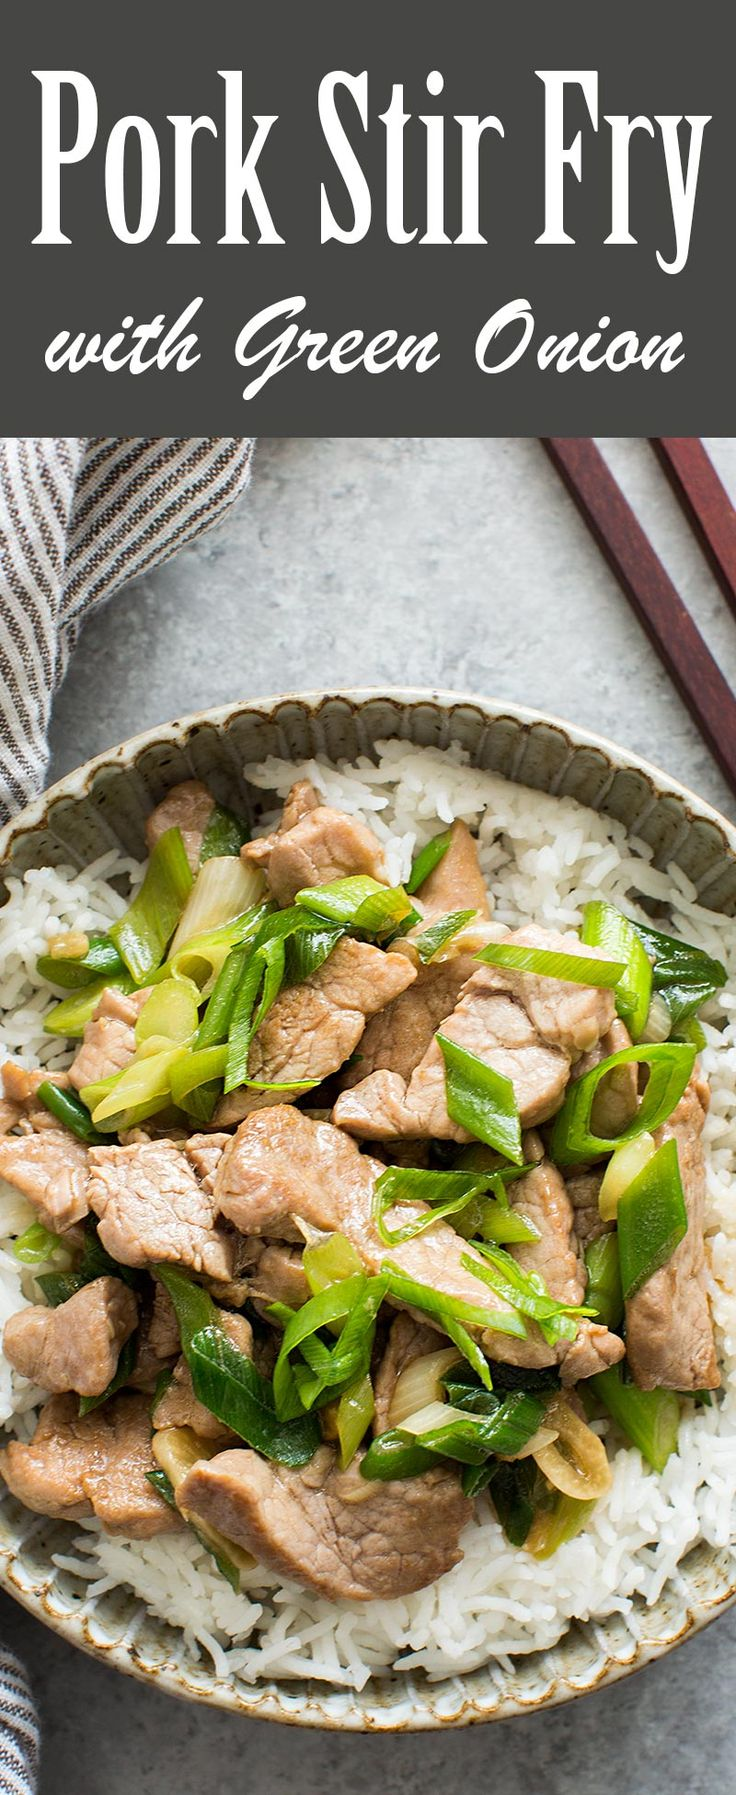 Quick and easy Pork and Green Onion Stir Fry! Takes only 25 minutes start to finish. Great for a midweek dinner. #healthy On SimplyRecipes.com